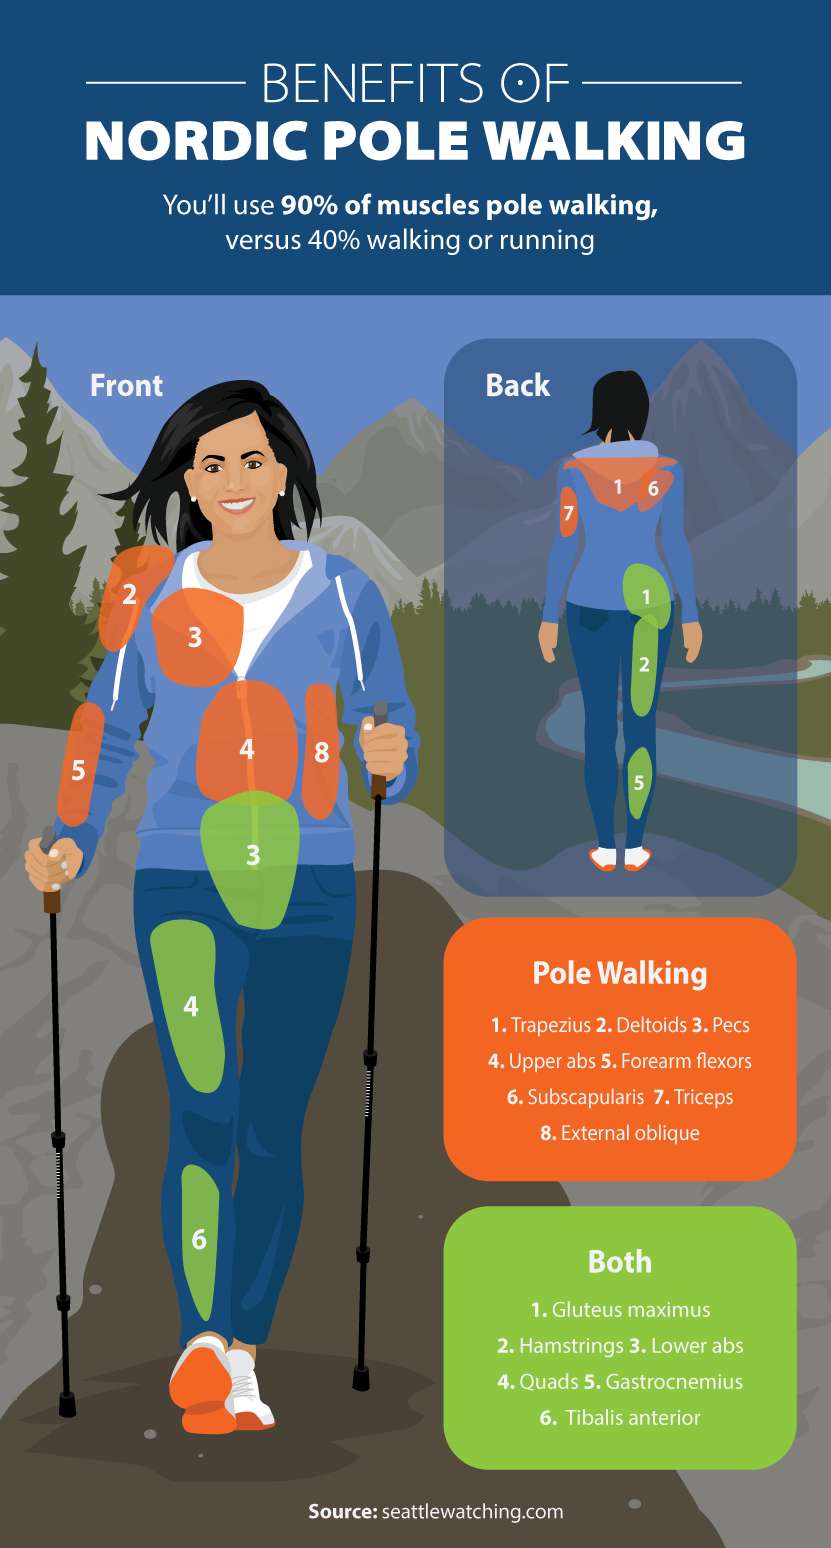 Benefits of Nordic Pole Walking - Beginner's Guide to Nordic Pole Walking